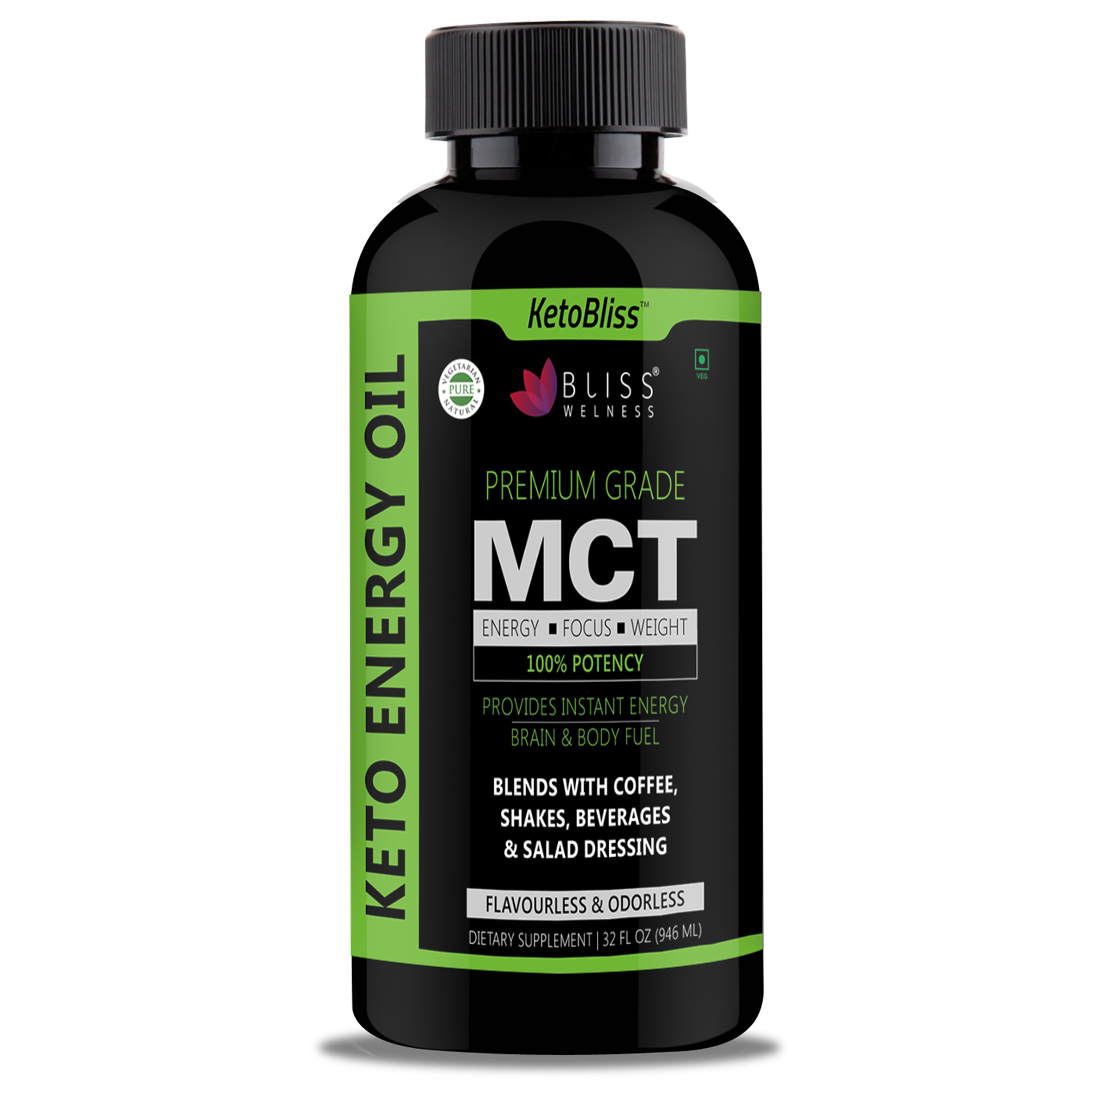 Bliss Welness 'Keto Bliss' MCT Energy Oil- Medium Chain Triglyceride